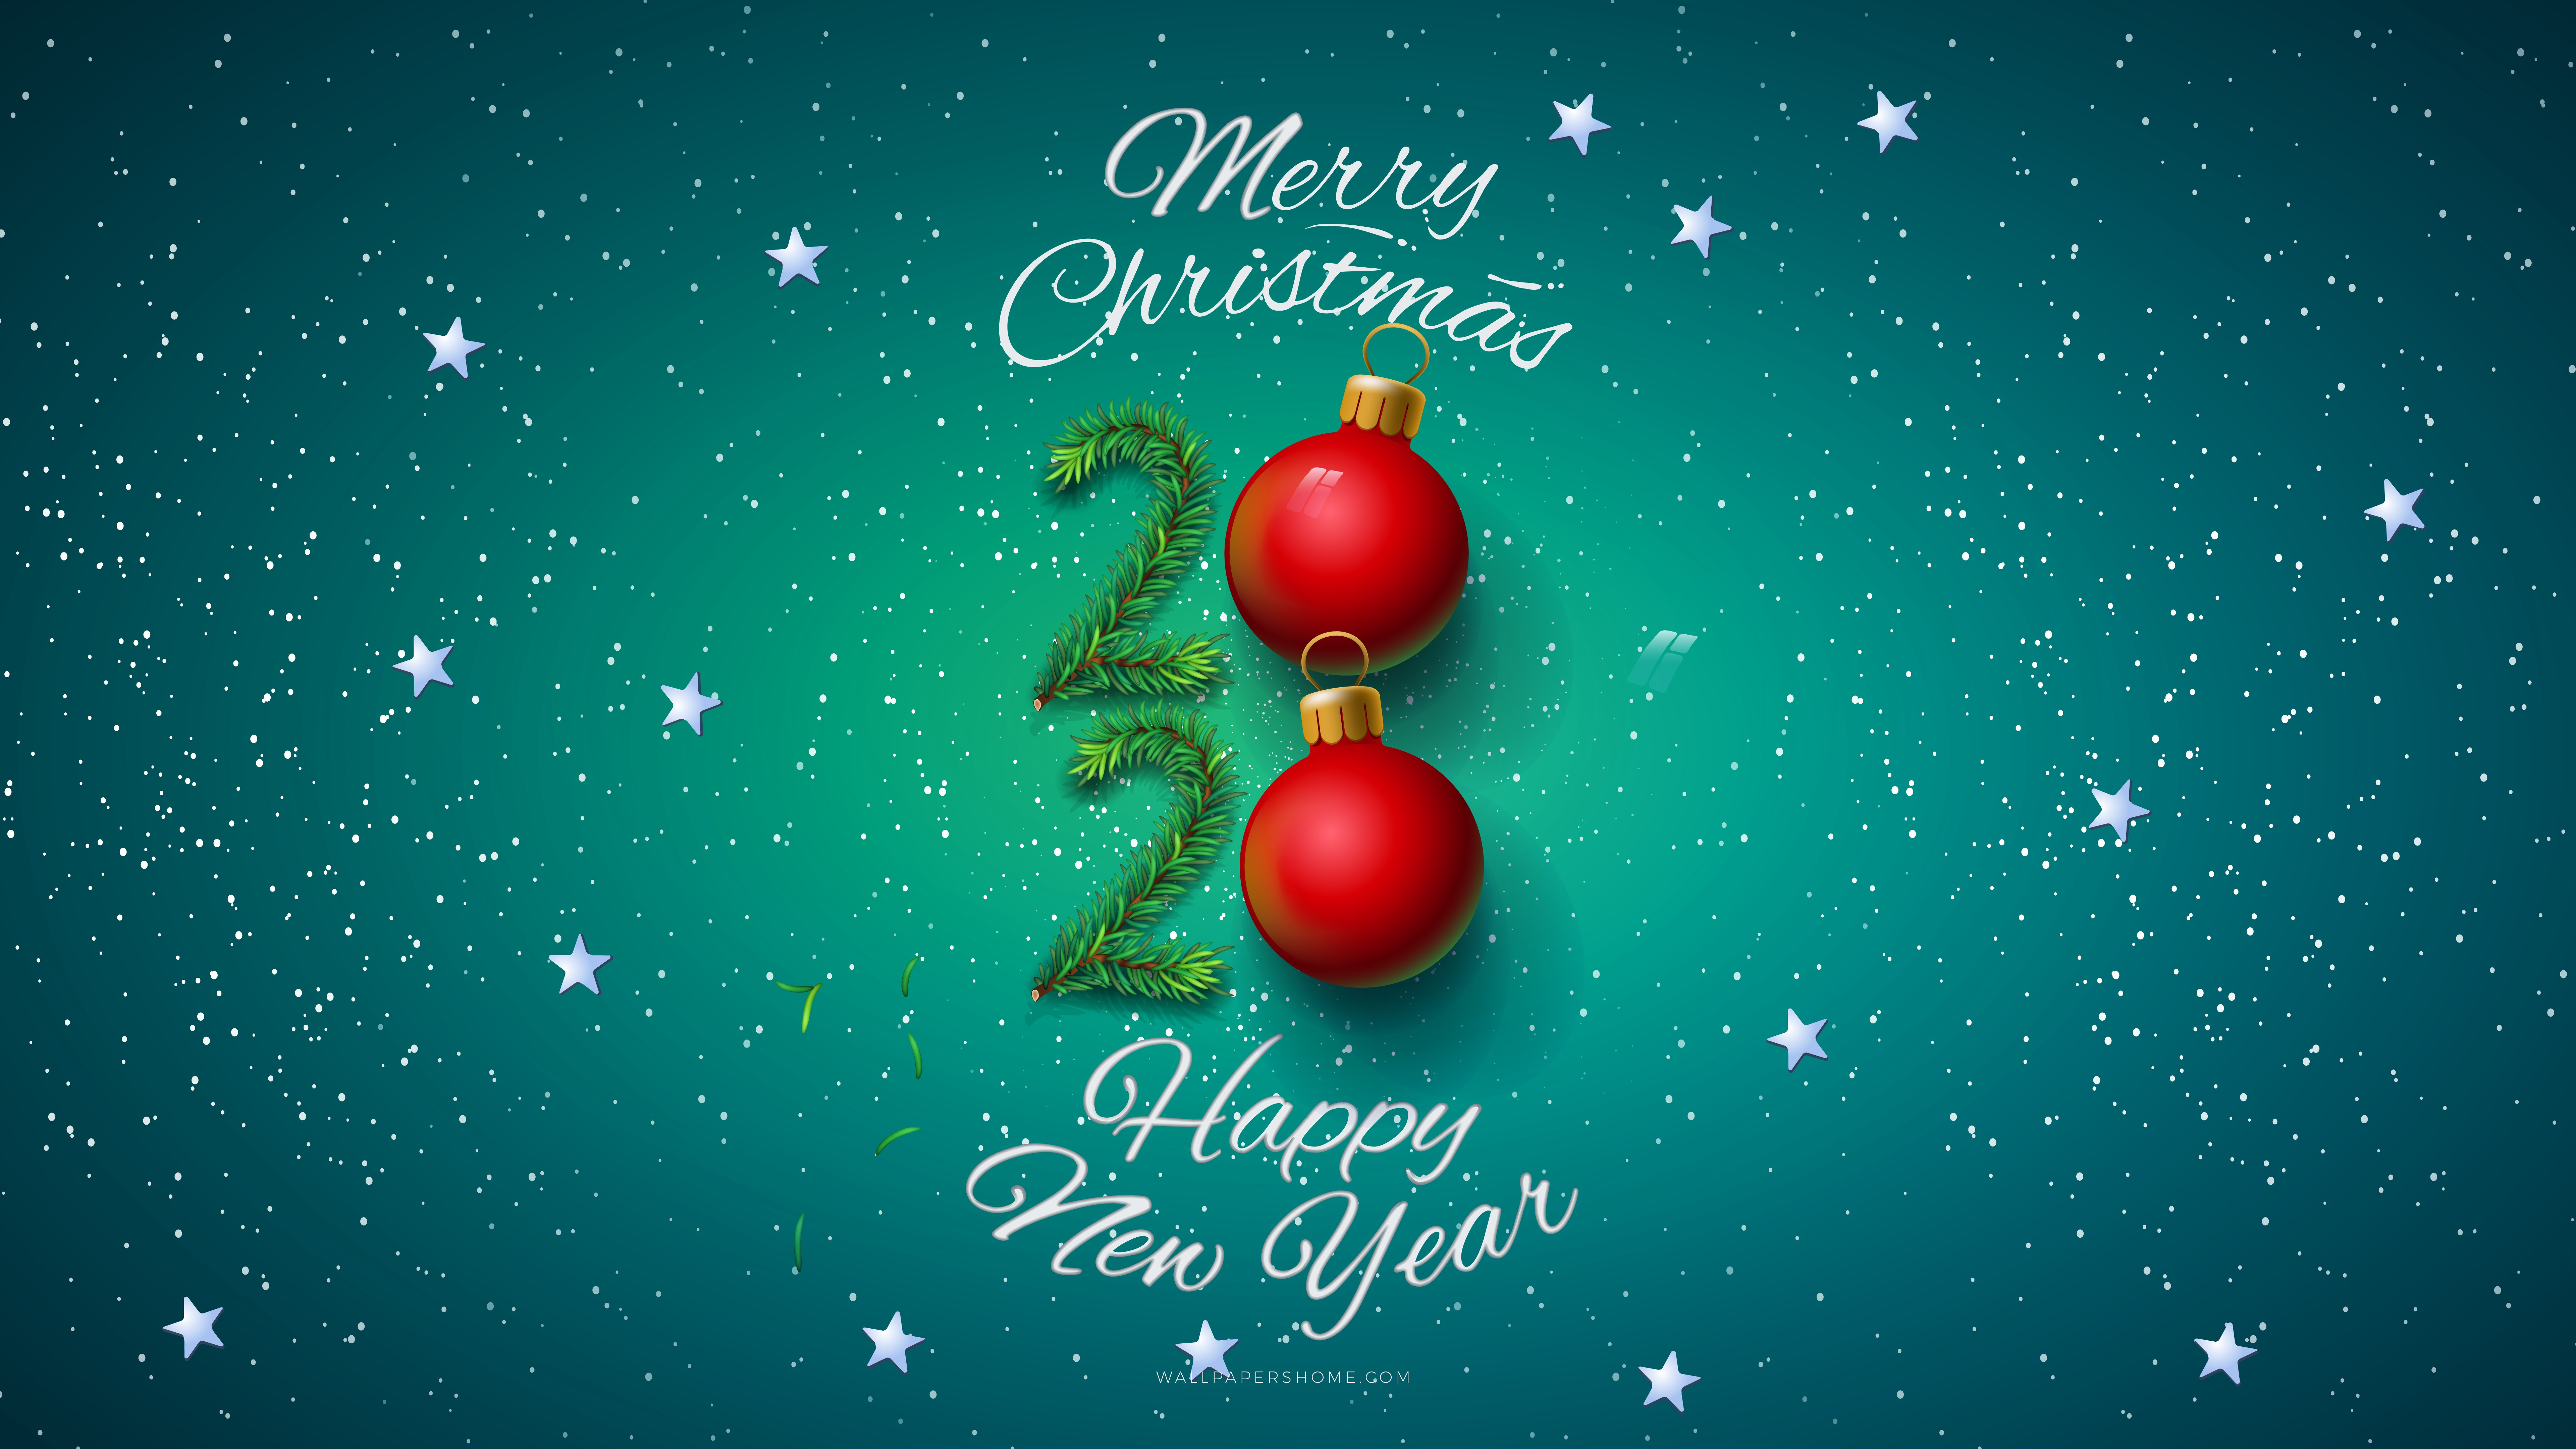 Wallpaper New Year 2019 Christmas Poster 8k Holidays 20911